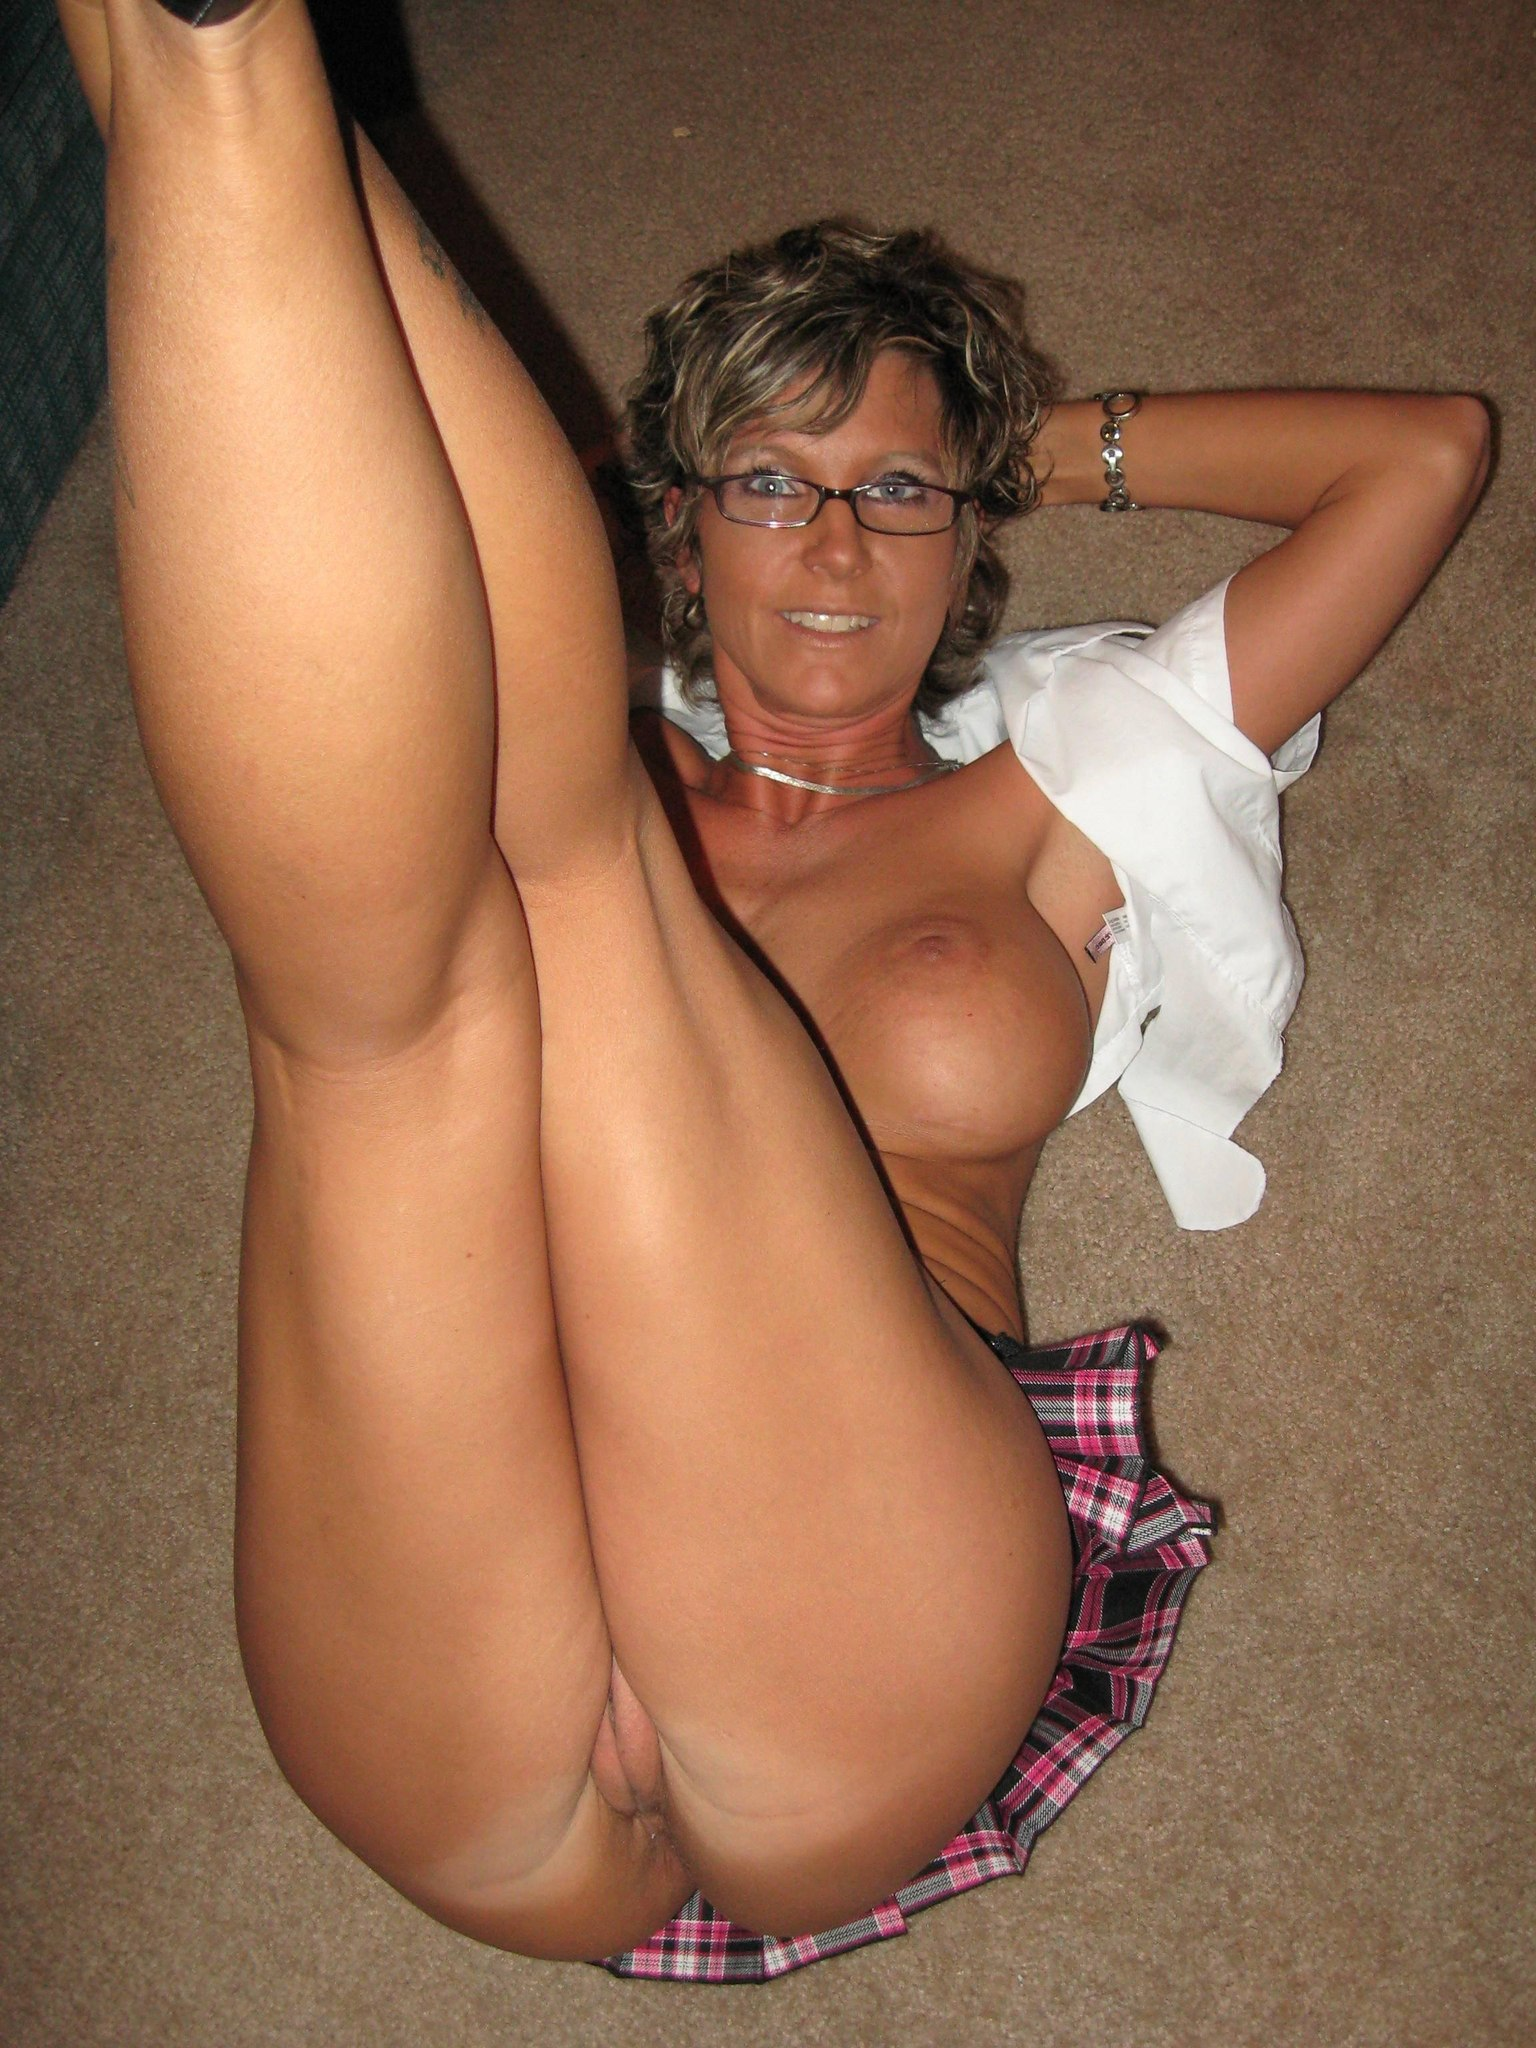 The Second Part Of The Sex Party With Hot Milfs